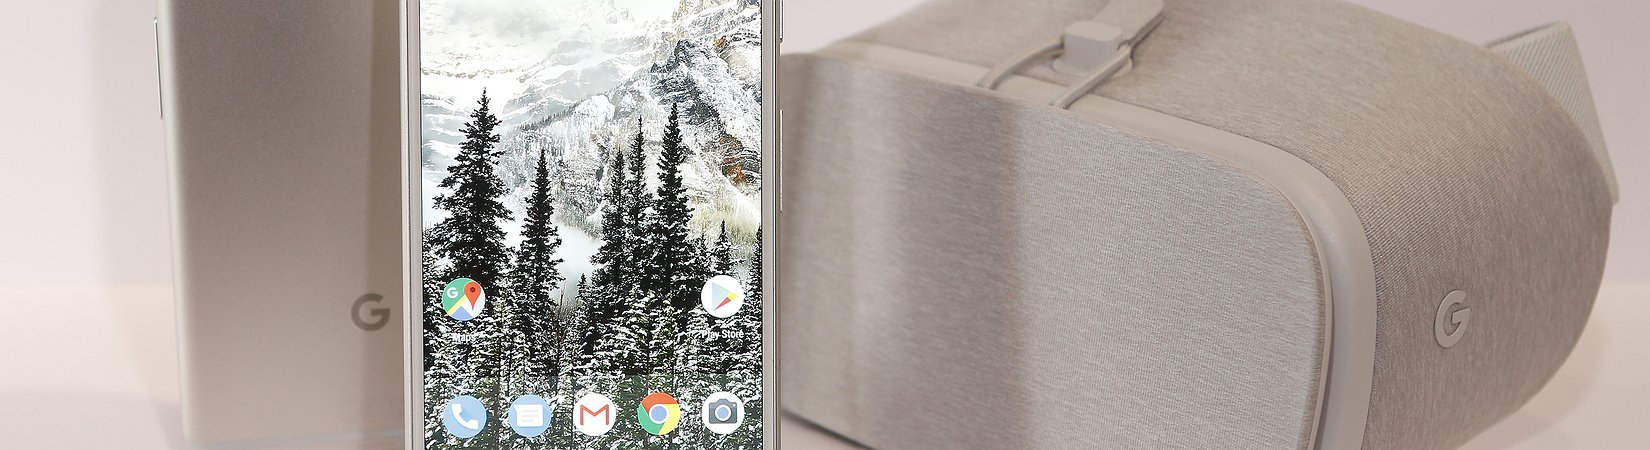 'Google offers LG $900m to supply screens for its new phone'